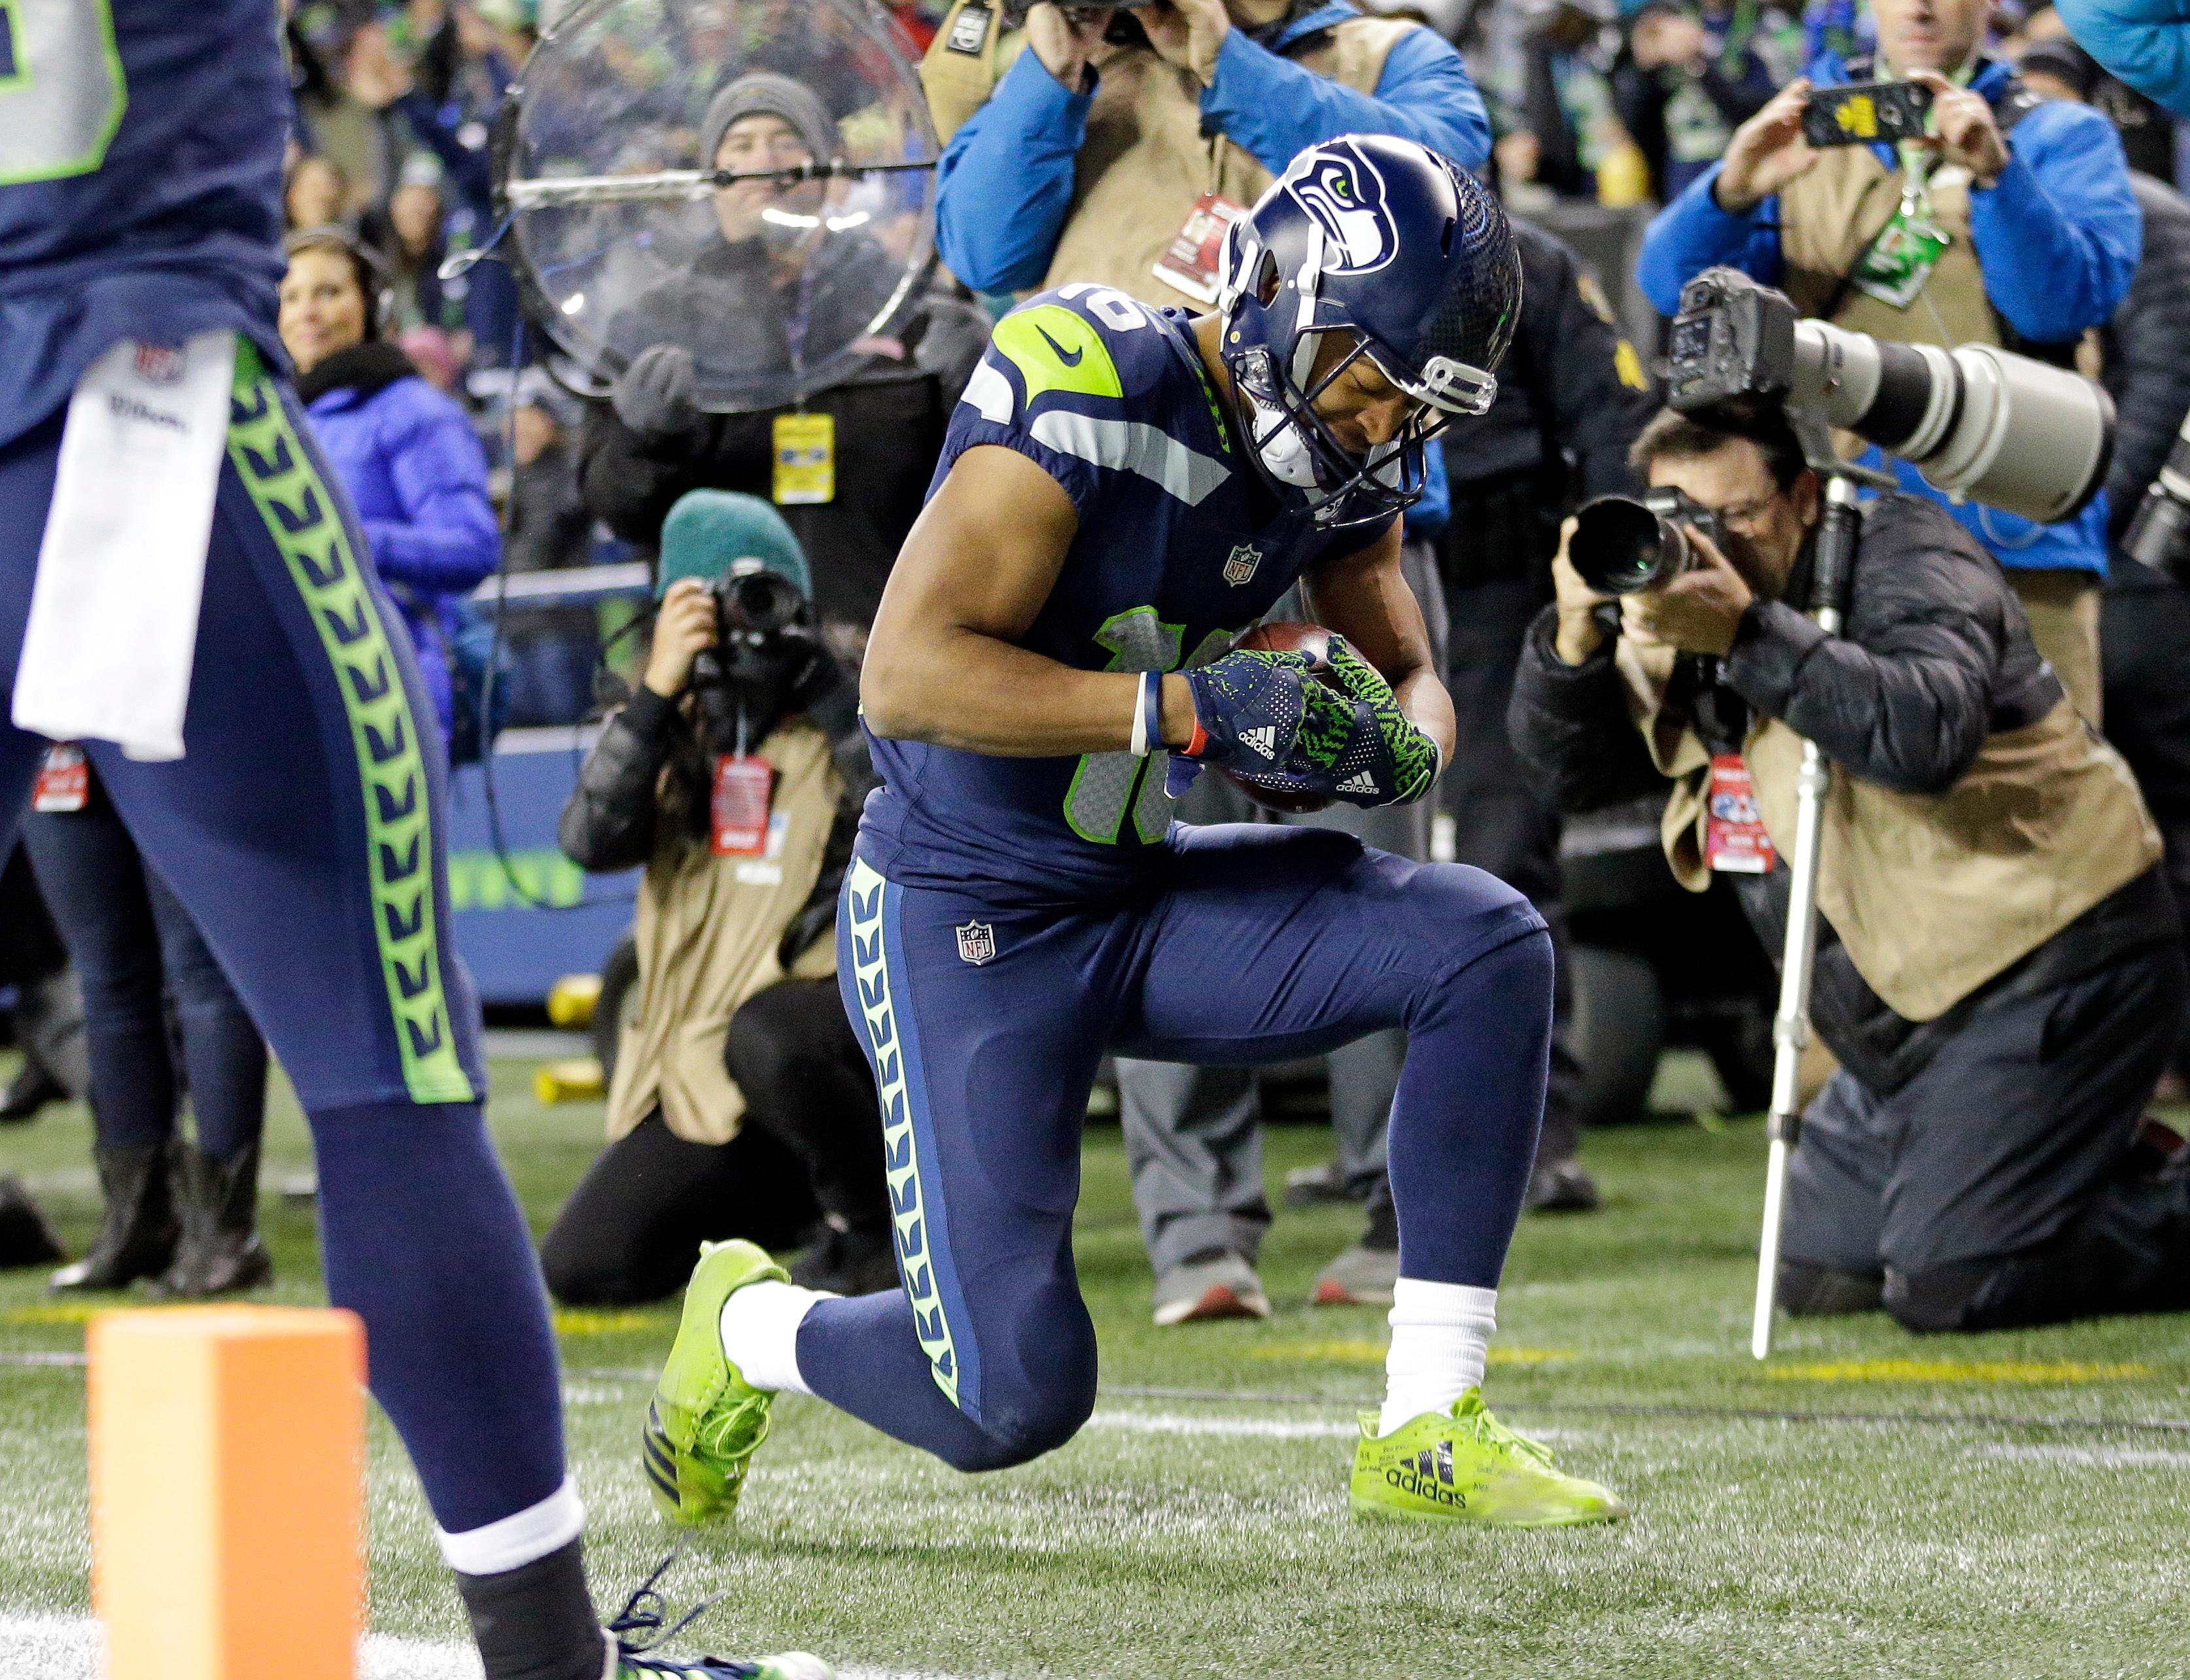 Seattle Seahawks' Tyler Lockett kneels after scoring a touchdown against the Philadelphia Eagles during the second half of an NFL football game, Sunday, Dec. 3, 2017, in Seattle. (AP Photo/Ted S. Warren)